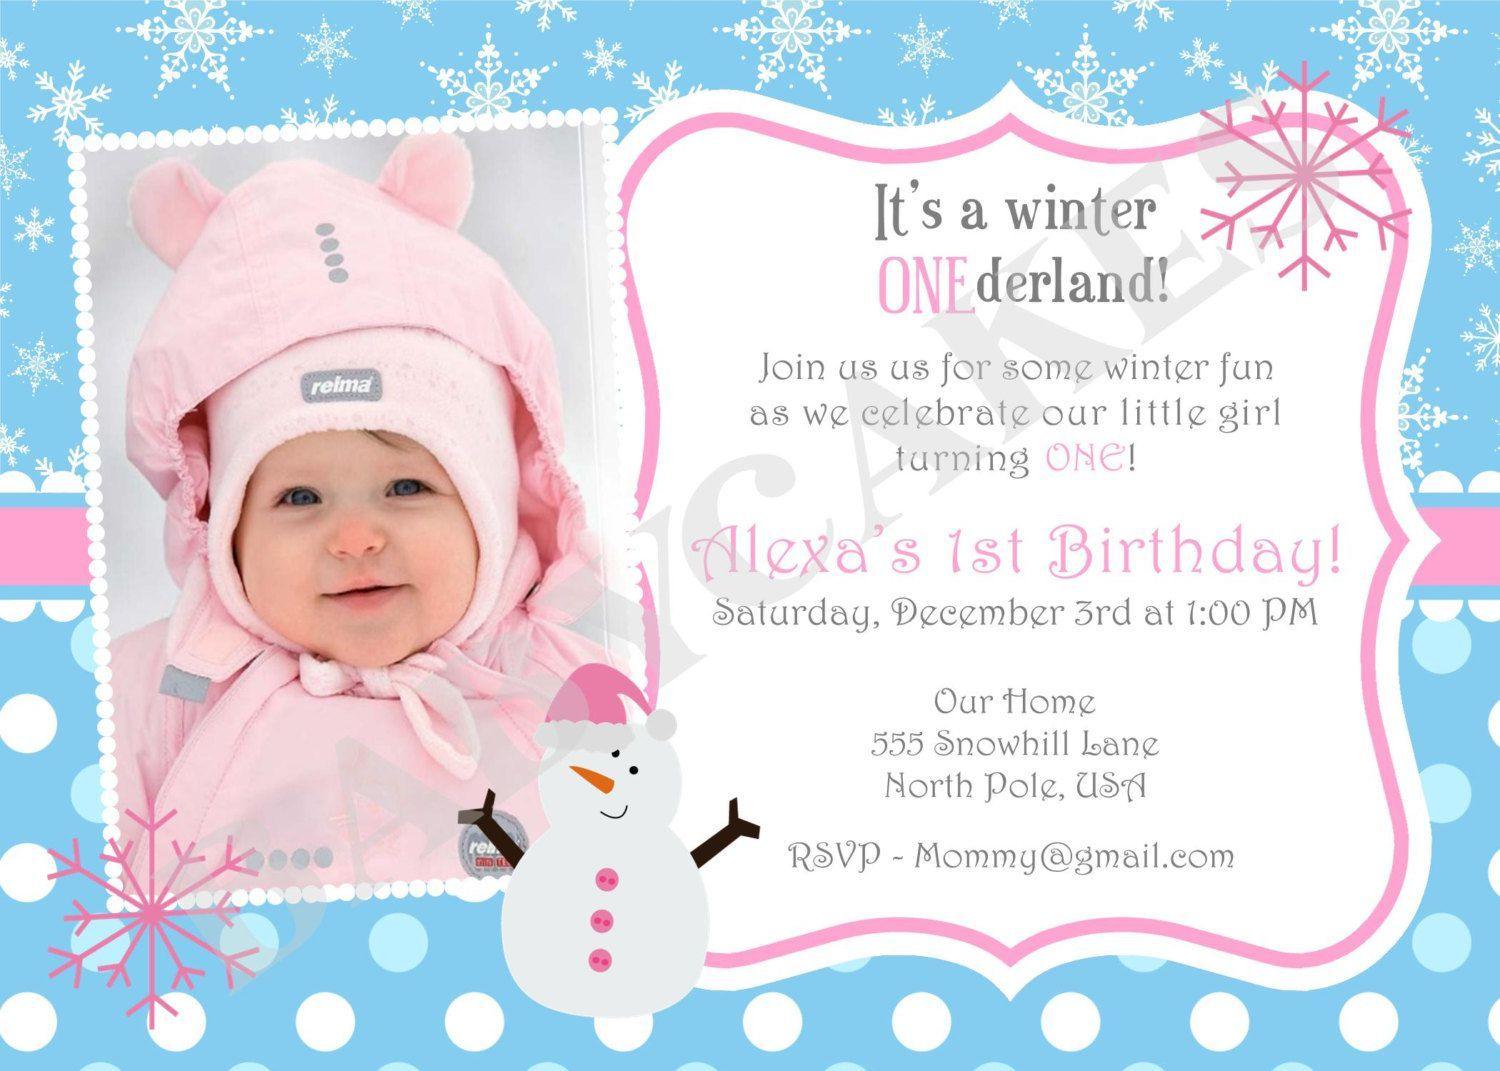 Best Birthday Invitations Template Images On Pinterest - Birthday invitation wording for 1 year old baby girl